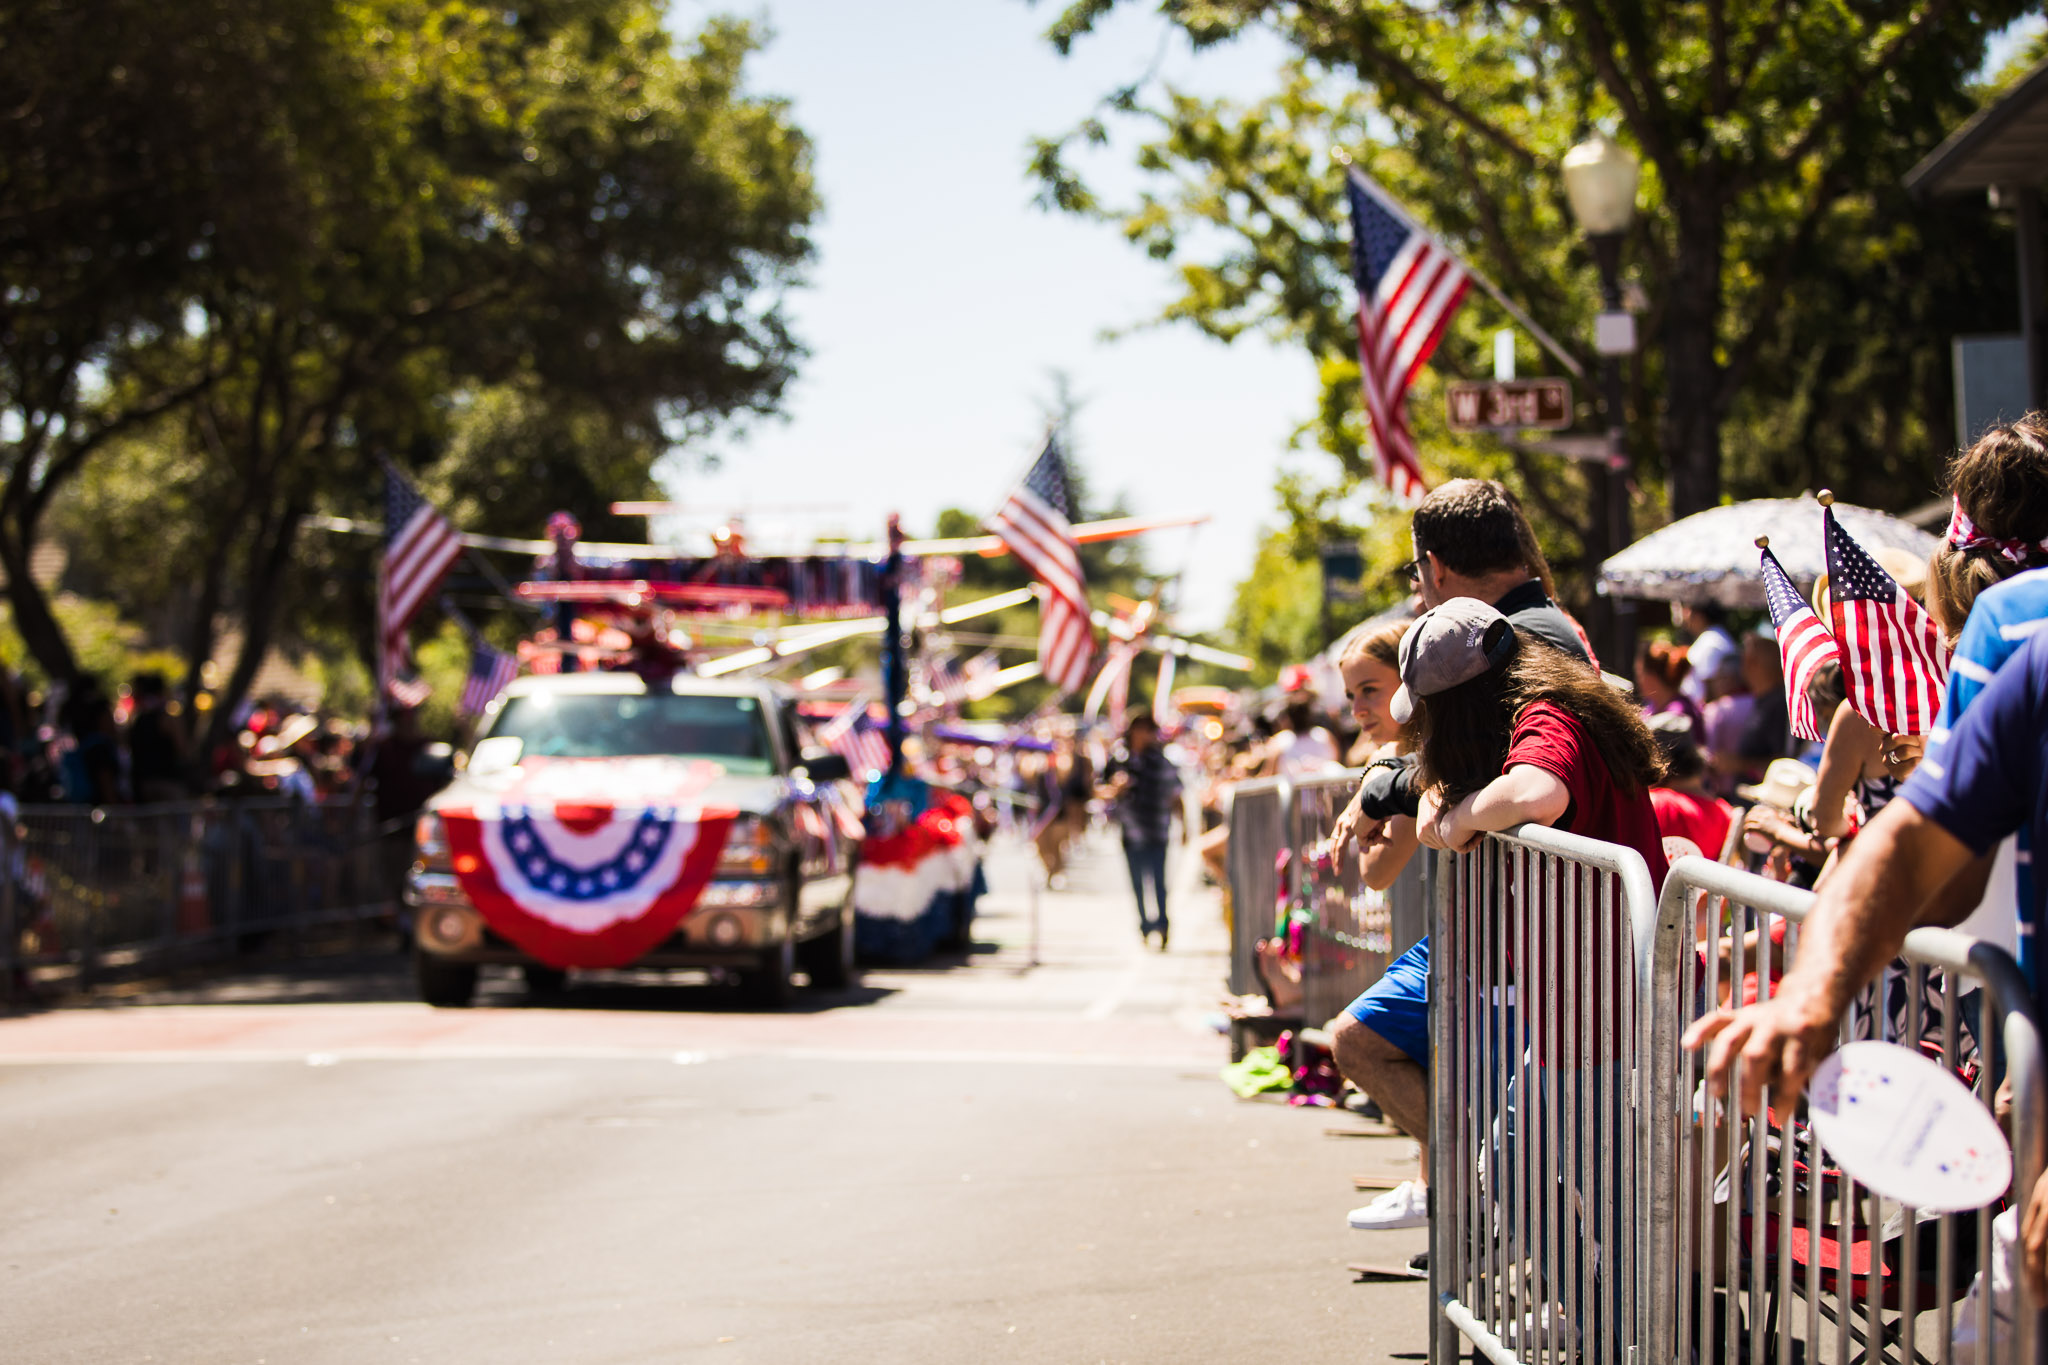 Archer_Inspired_Photography_Morgan_Hill_California_4th_of_july_parade-169.jpg